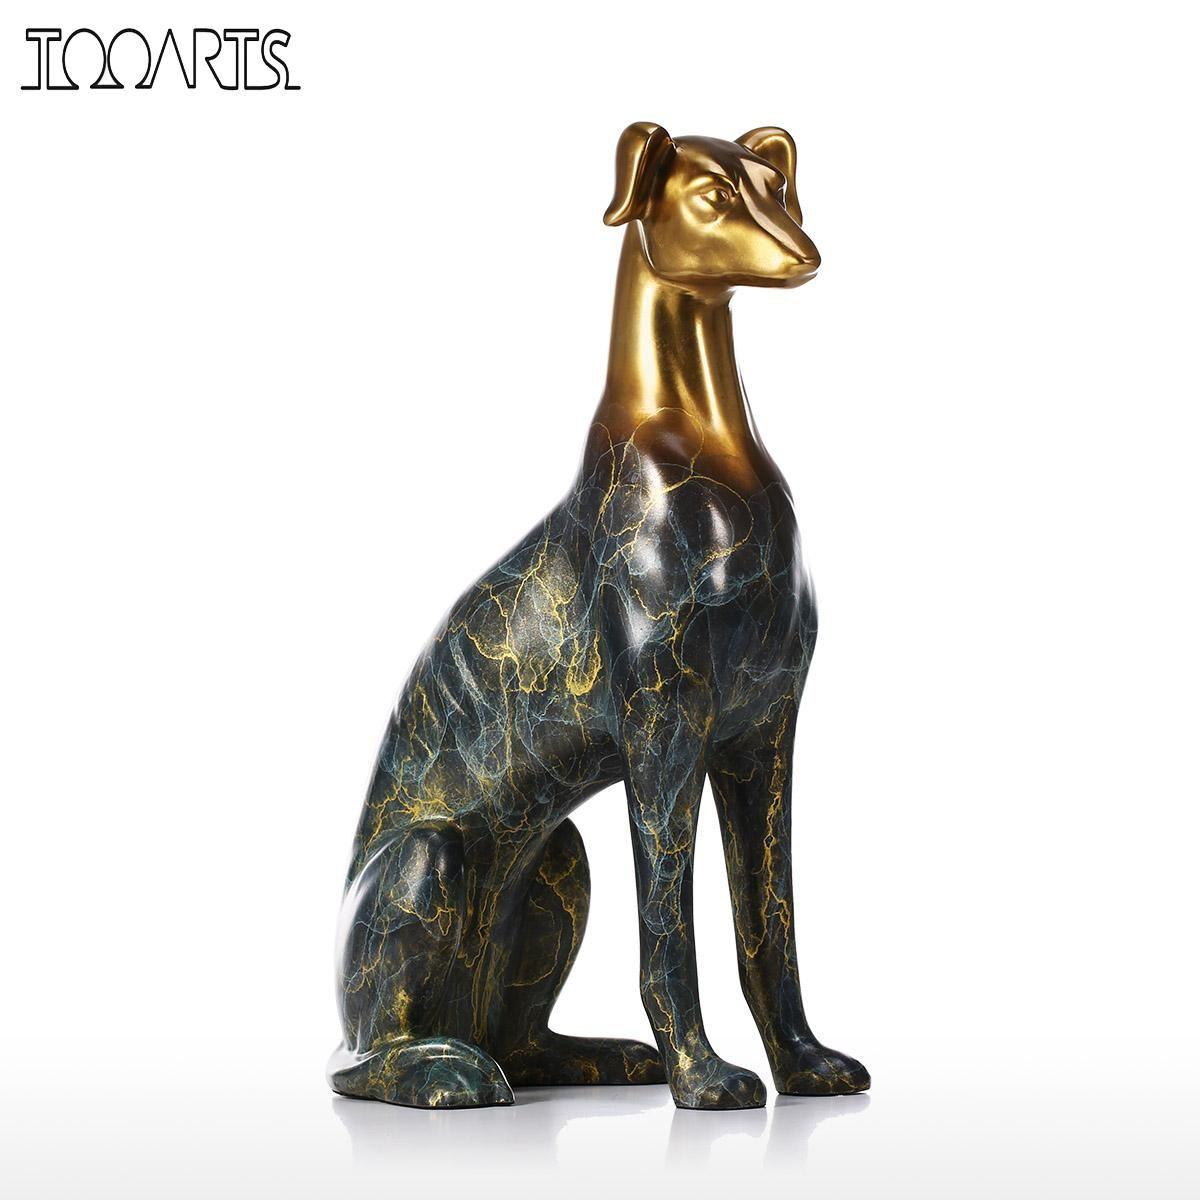 Tooarts Labrador Dog Bronze Sculpture Home Decor Sculpture Desktop Decorative Figurine Handmade Animal Statues & Sculptures